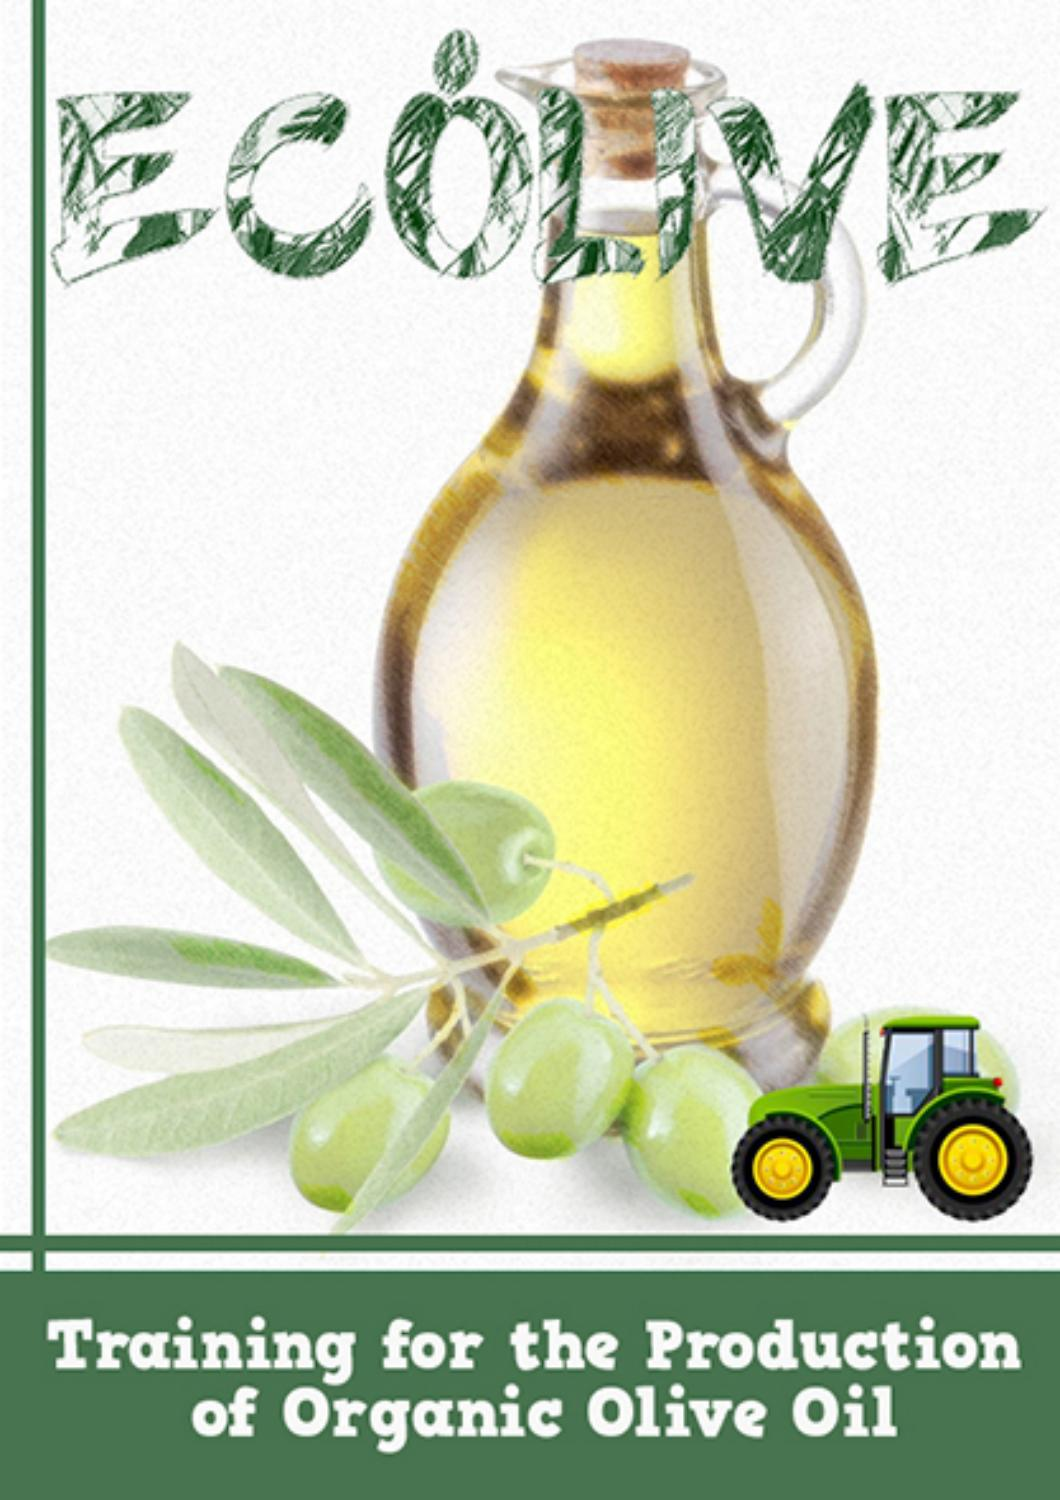 production of olive oil essay 1 introduction according to the international olive oil council (iooc), olive oil is a typical mediterranean product of great economic importance in the european union (both in terms of production and consumption), mainly produced in the countries of the mediterranean area, but with the growing importance of new producing countries situated in america, africa and australia (.